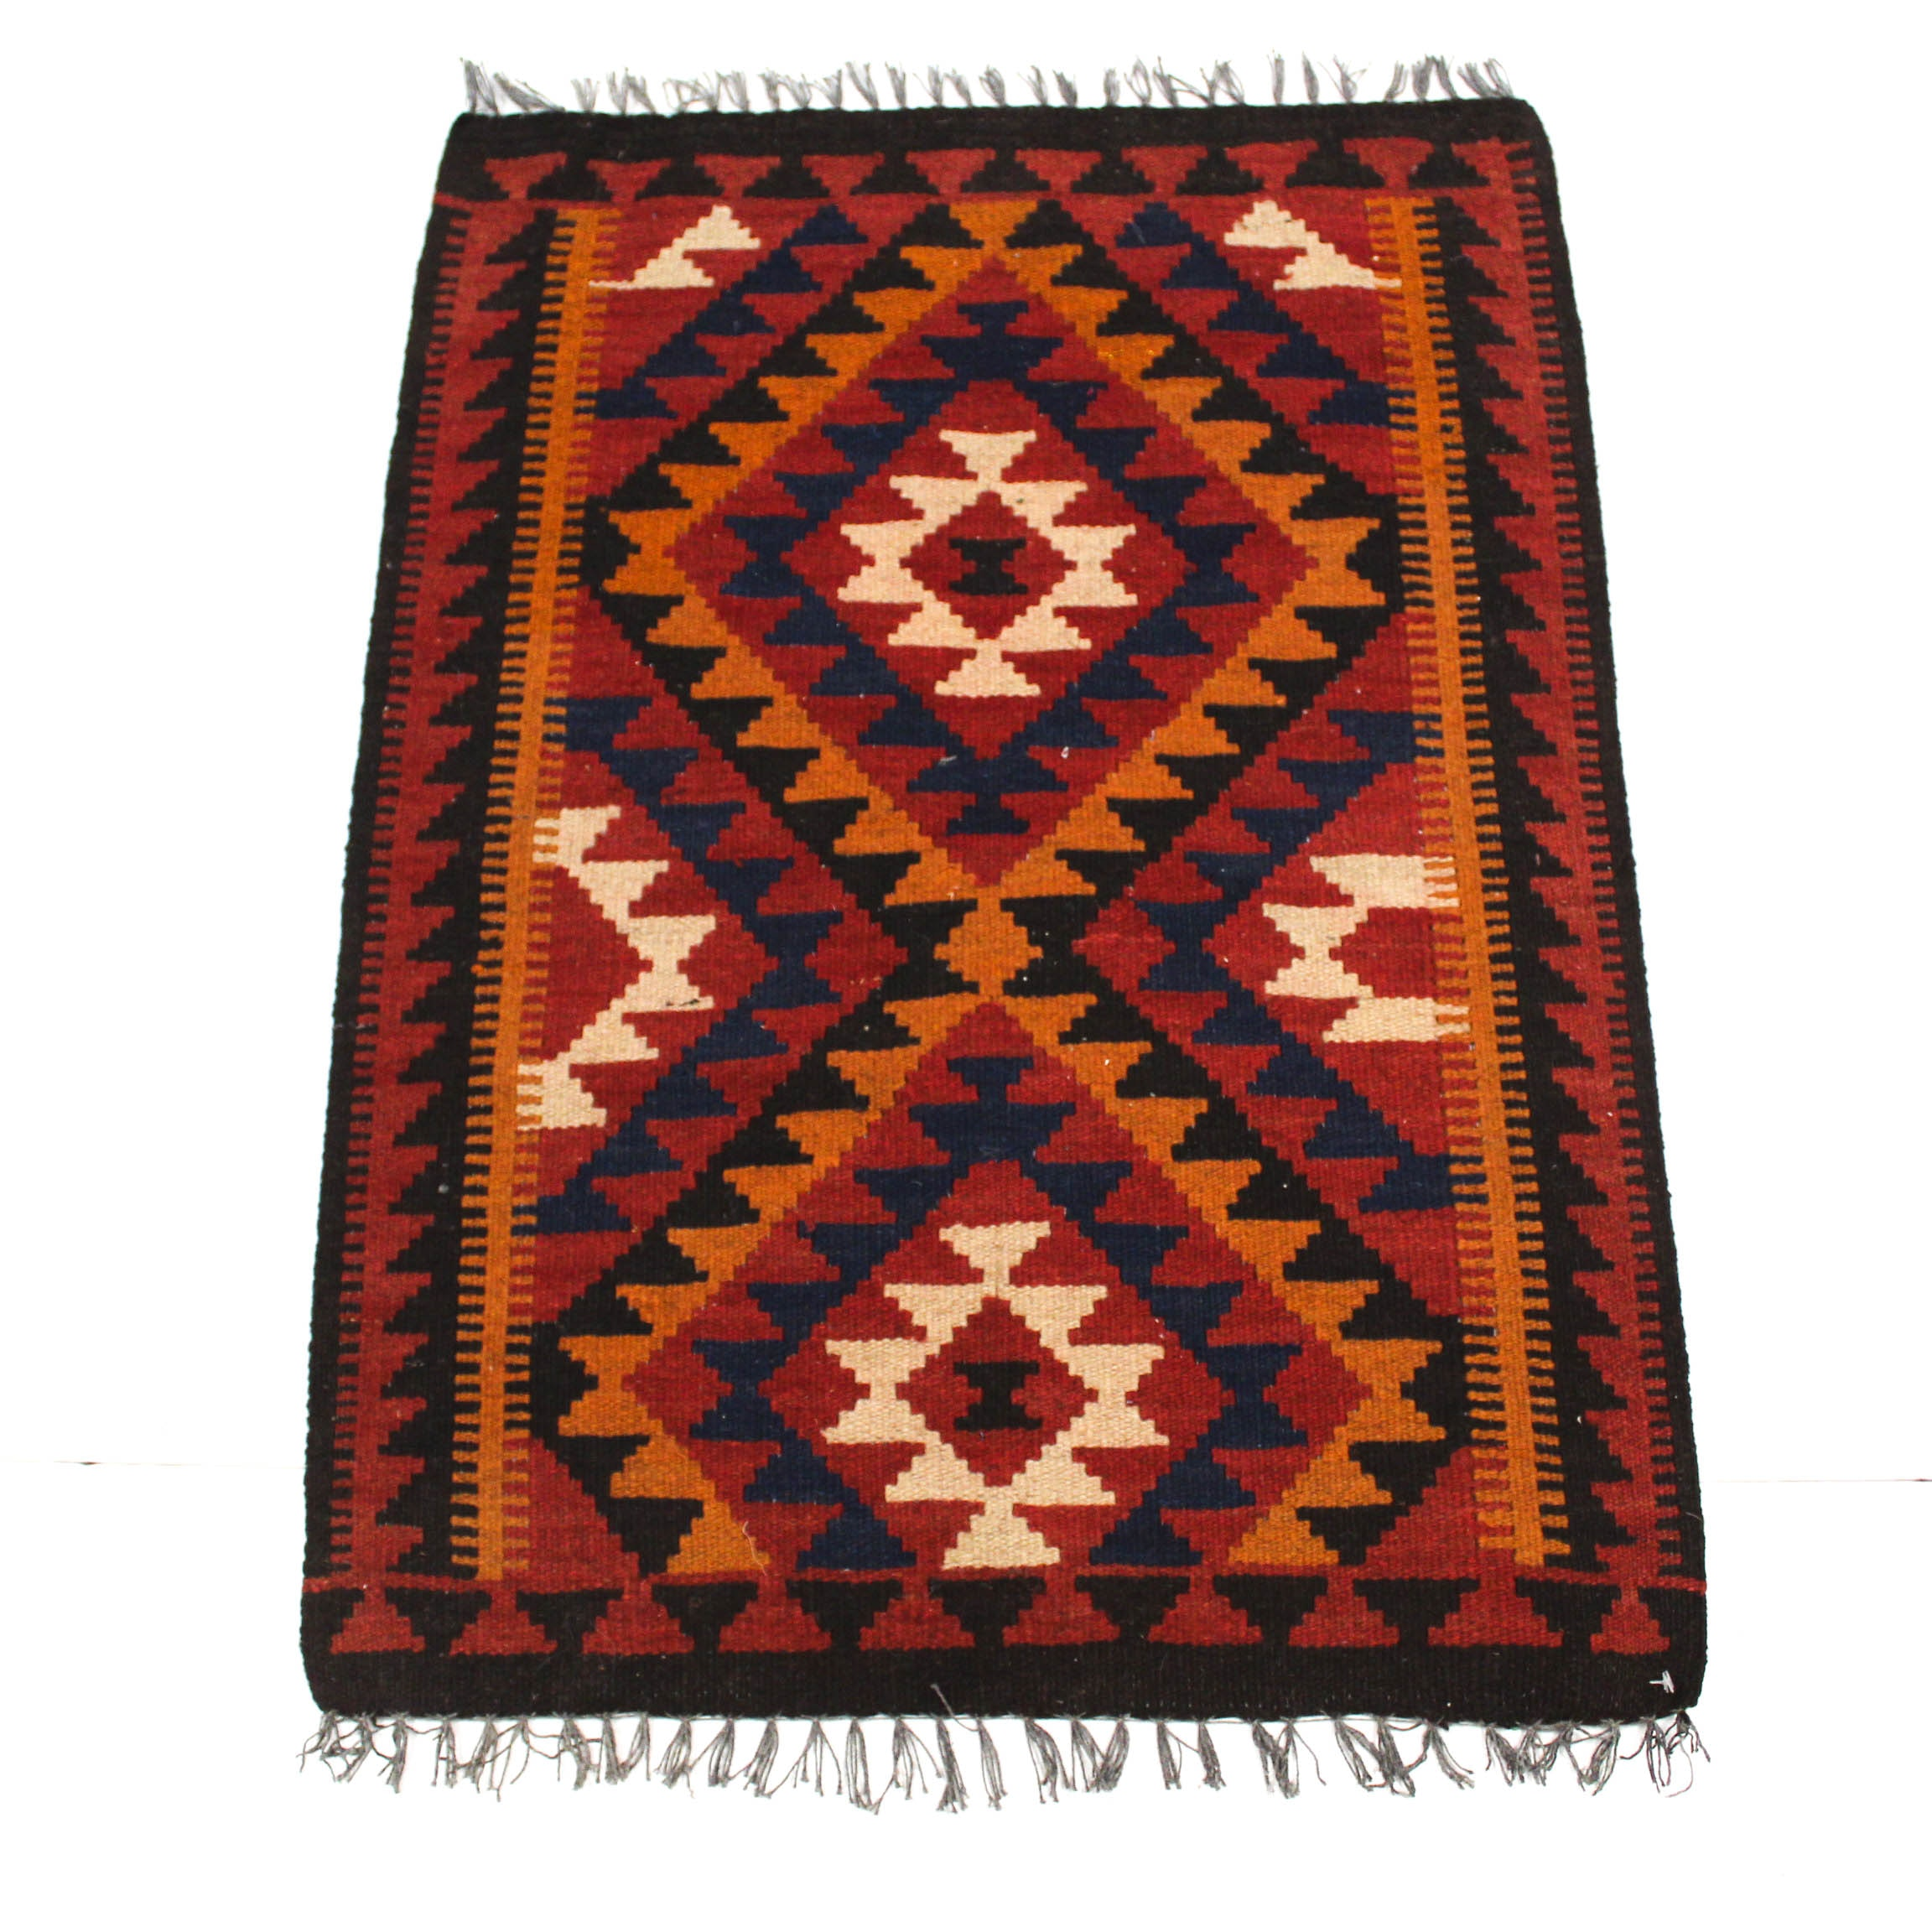 2'4 x 3'5 Semi-Antique Hand-Knotted Turkish Kilim Rug